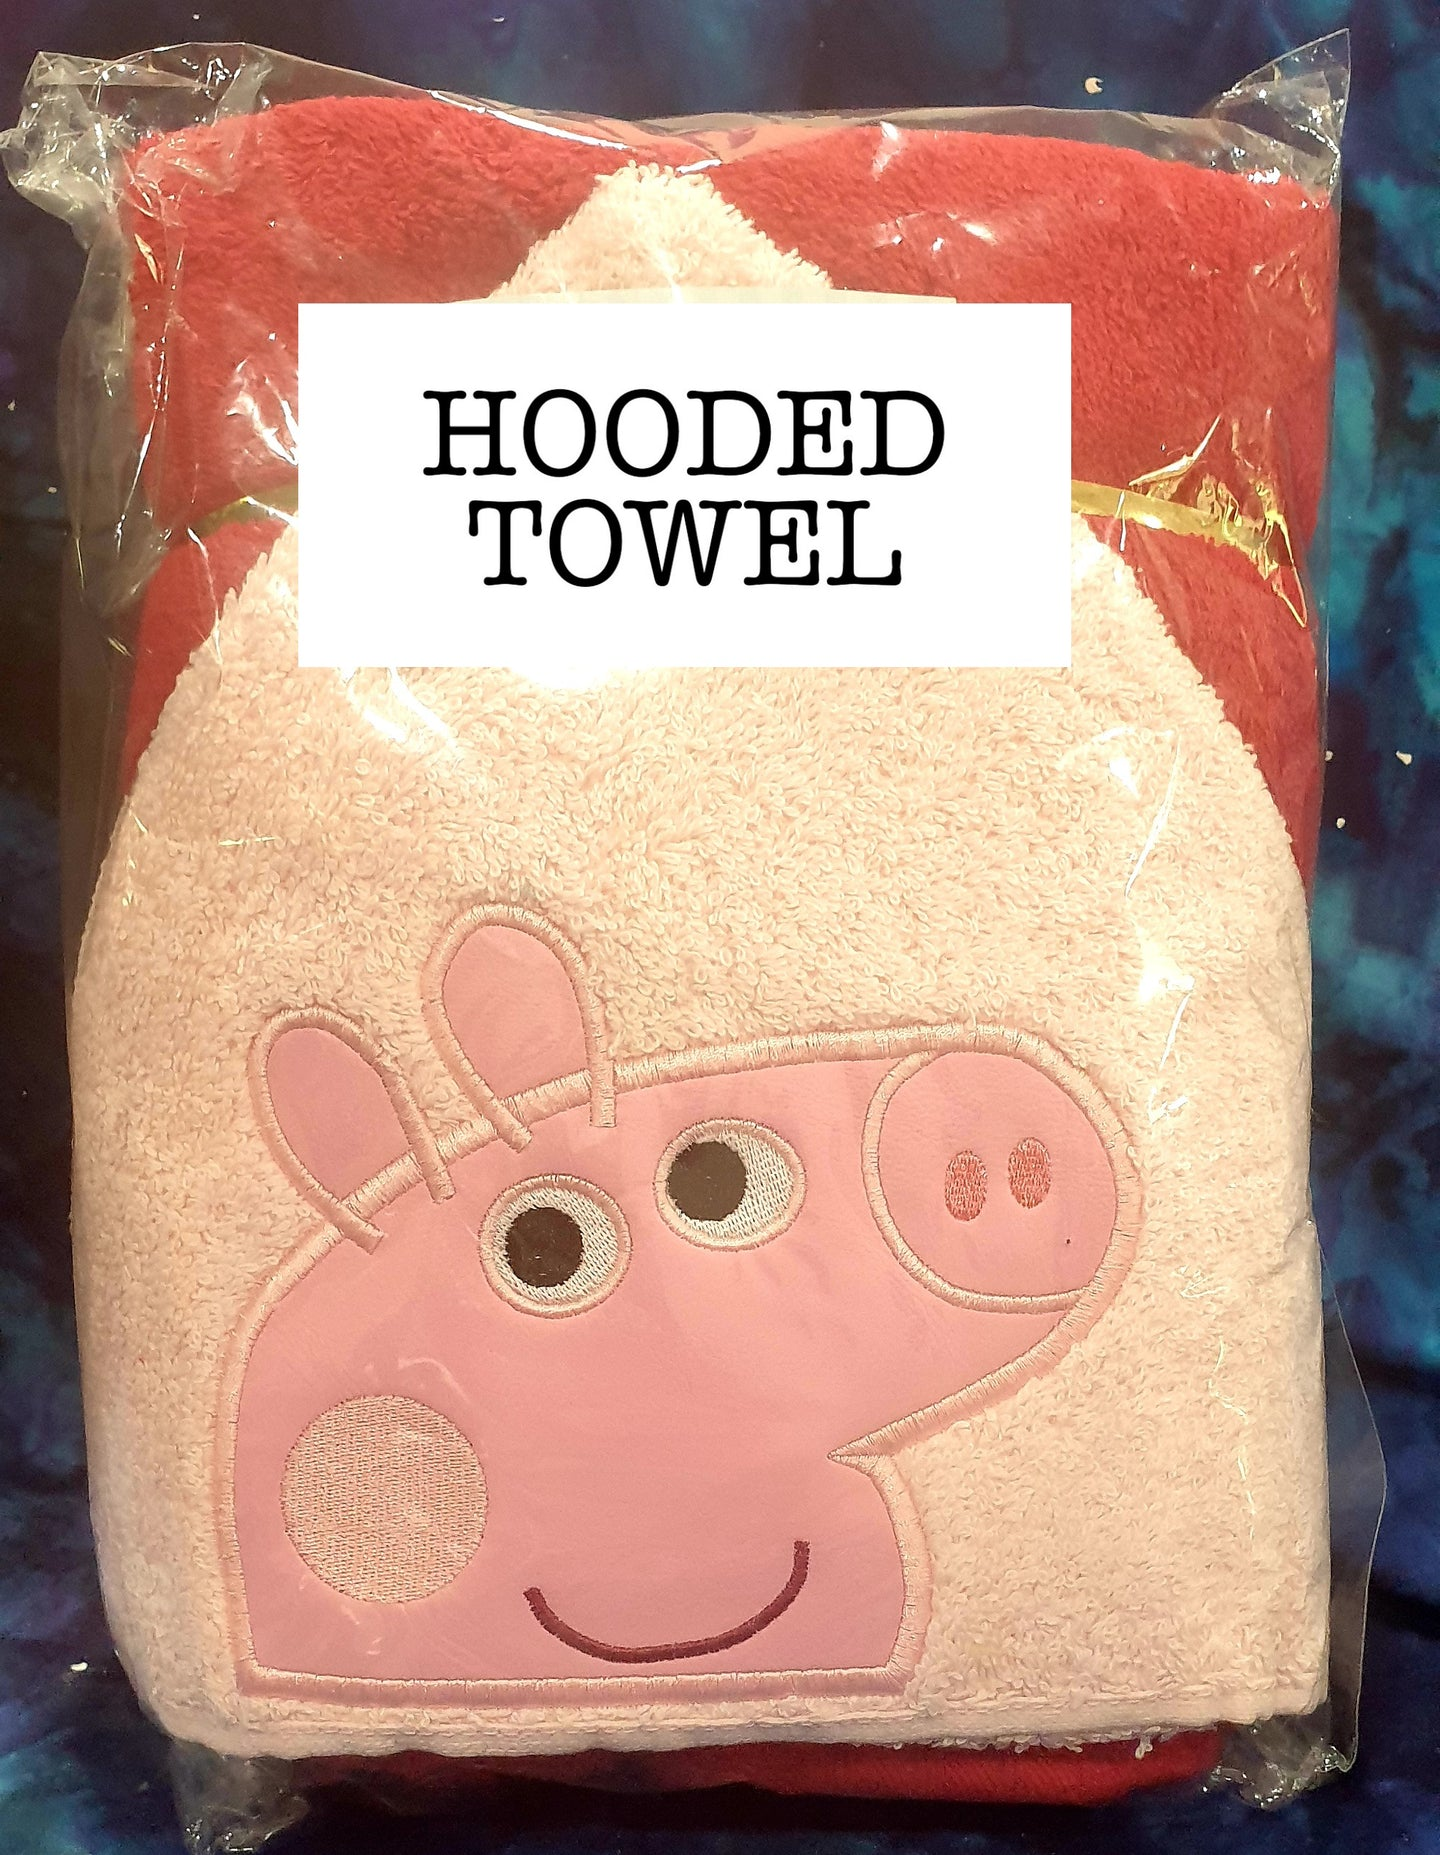 Pink Girl Pig Red Towel  Hooded Towel